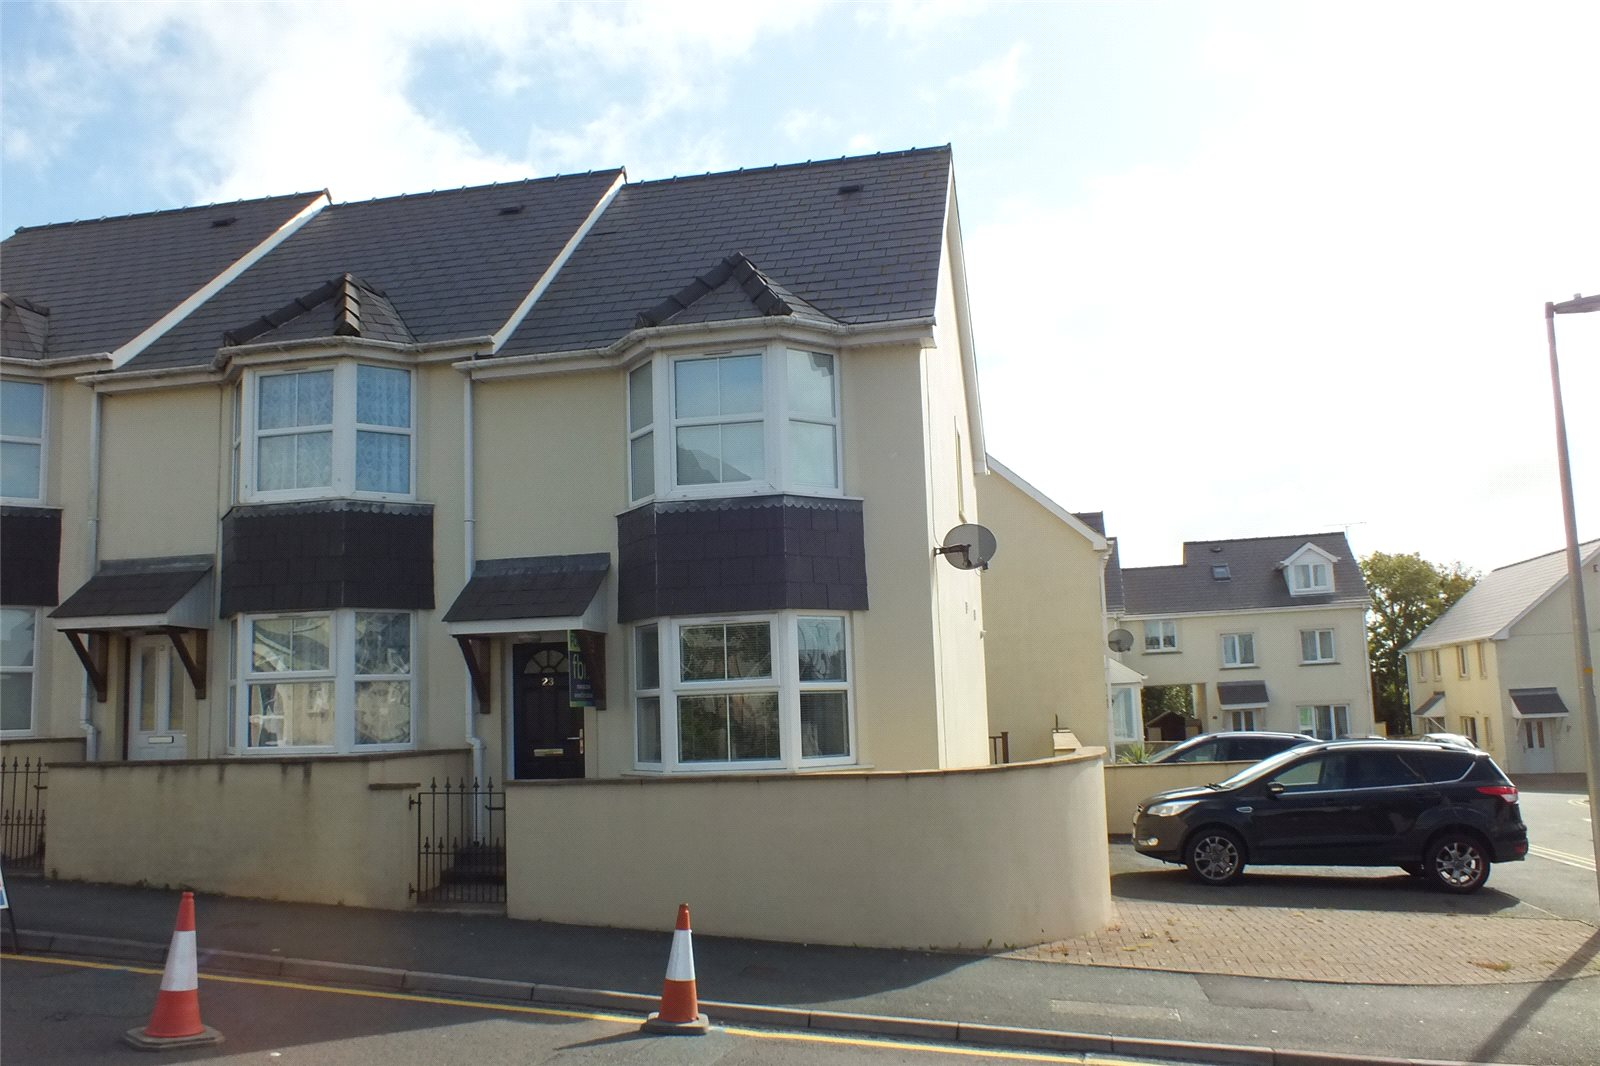 2 Bedrooms House for sale in Treowen Road, Pembroke Dock, Pembrokeshire